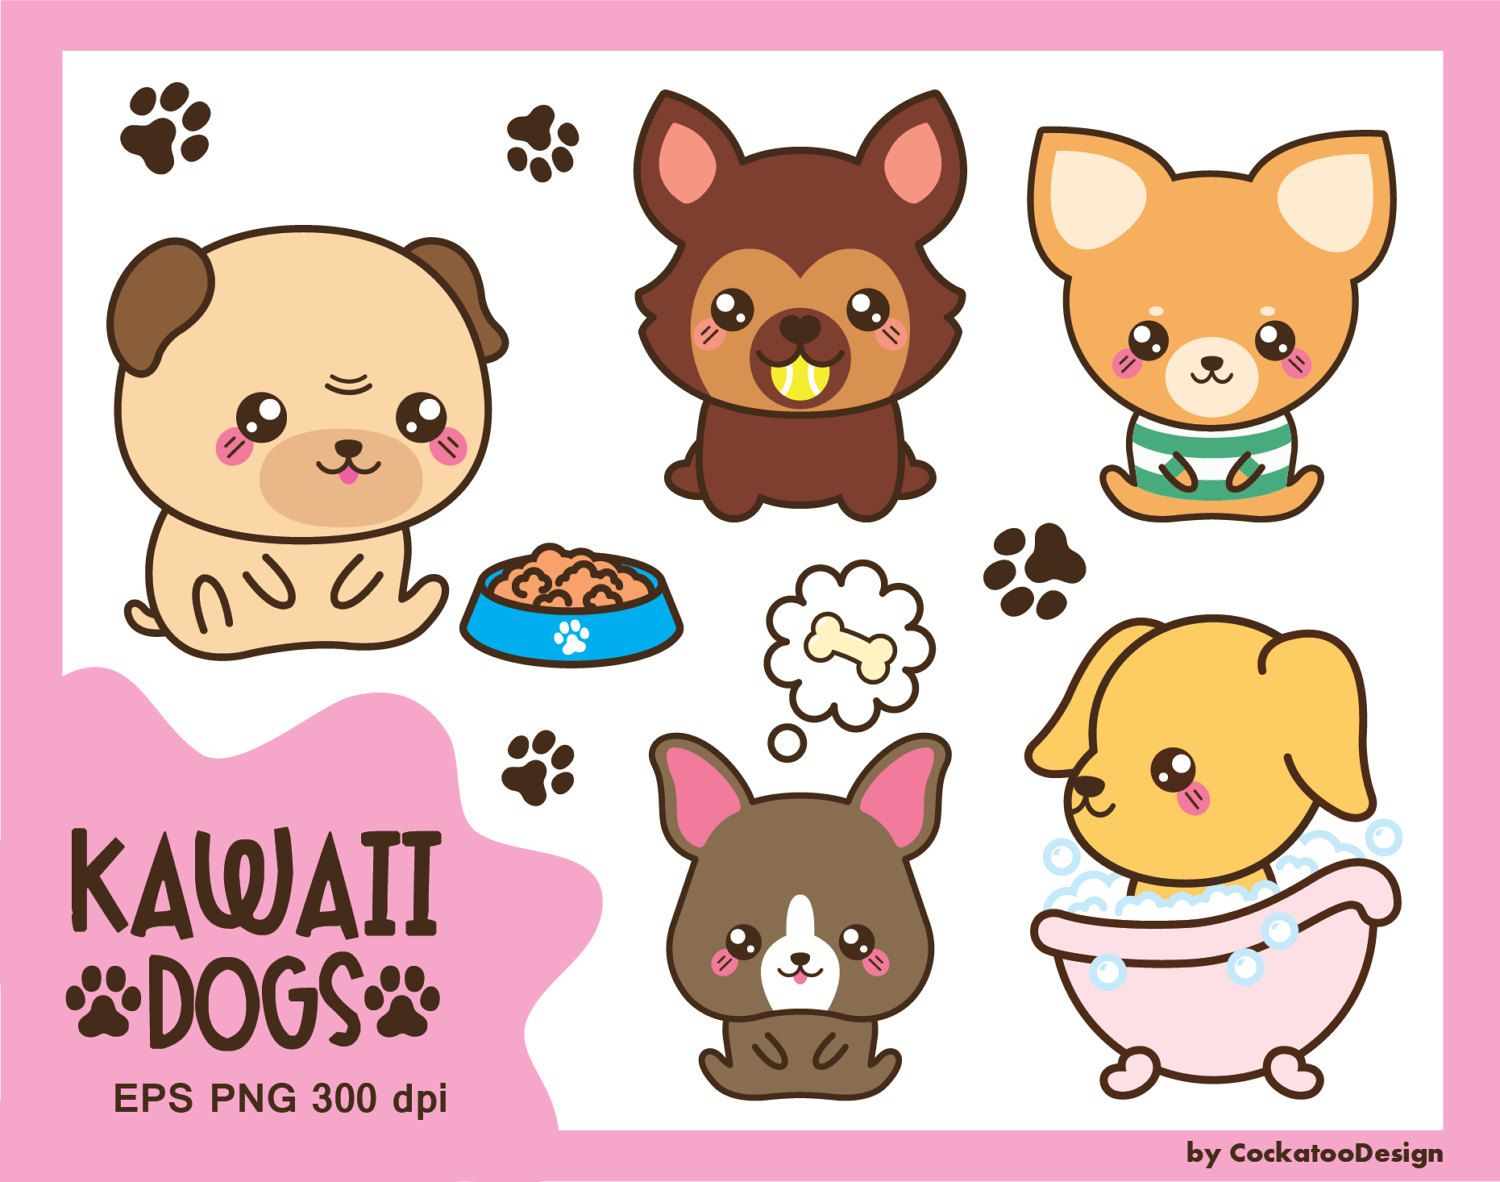 medium resolution of 50 off sale kawaii dog clipart cute dog clipart dog breeds clipart puppy clipart pug clipart boston terrier clipart commercial use by cockatoodesign